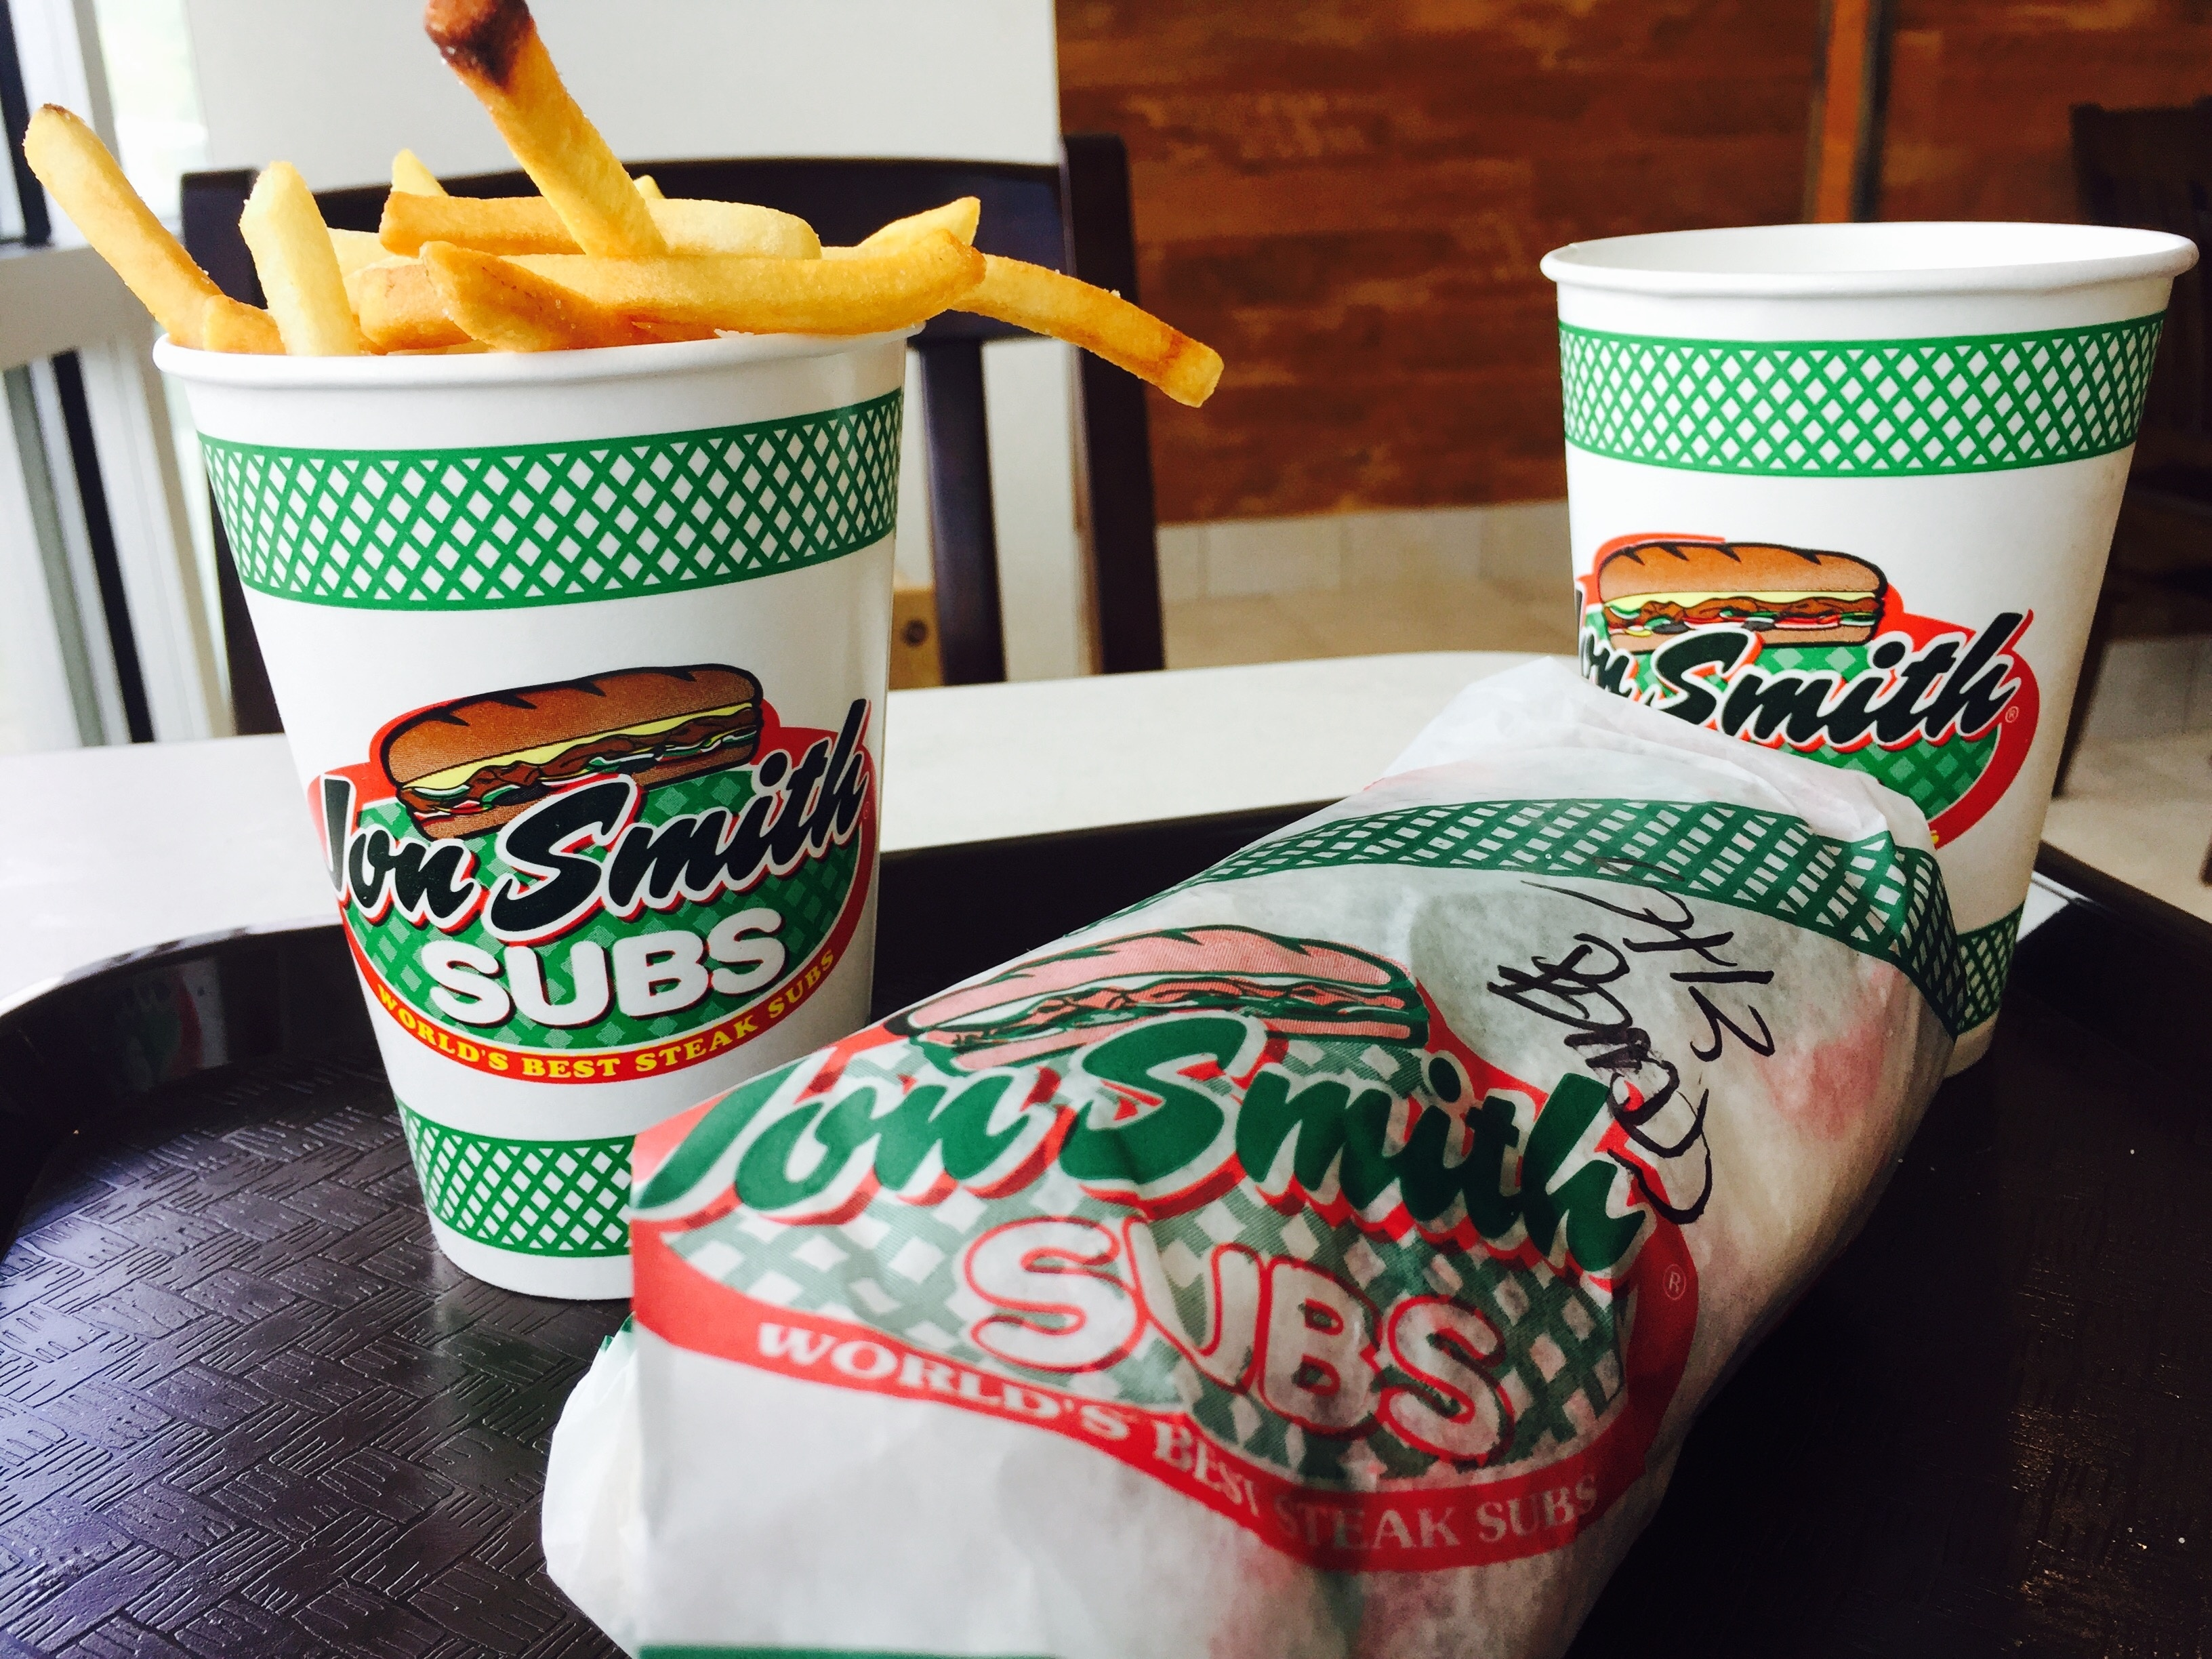 Jon Smith Subs - A Fast Casual Dining Experience!